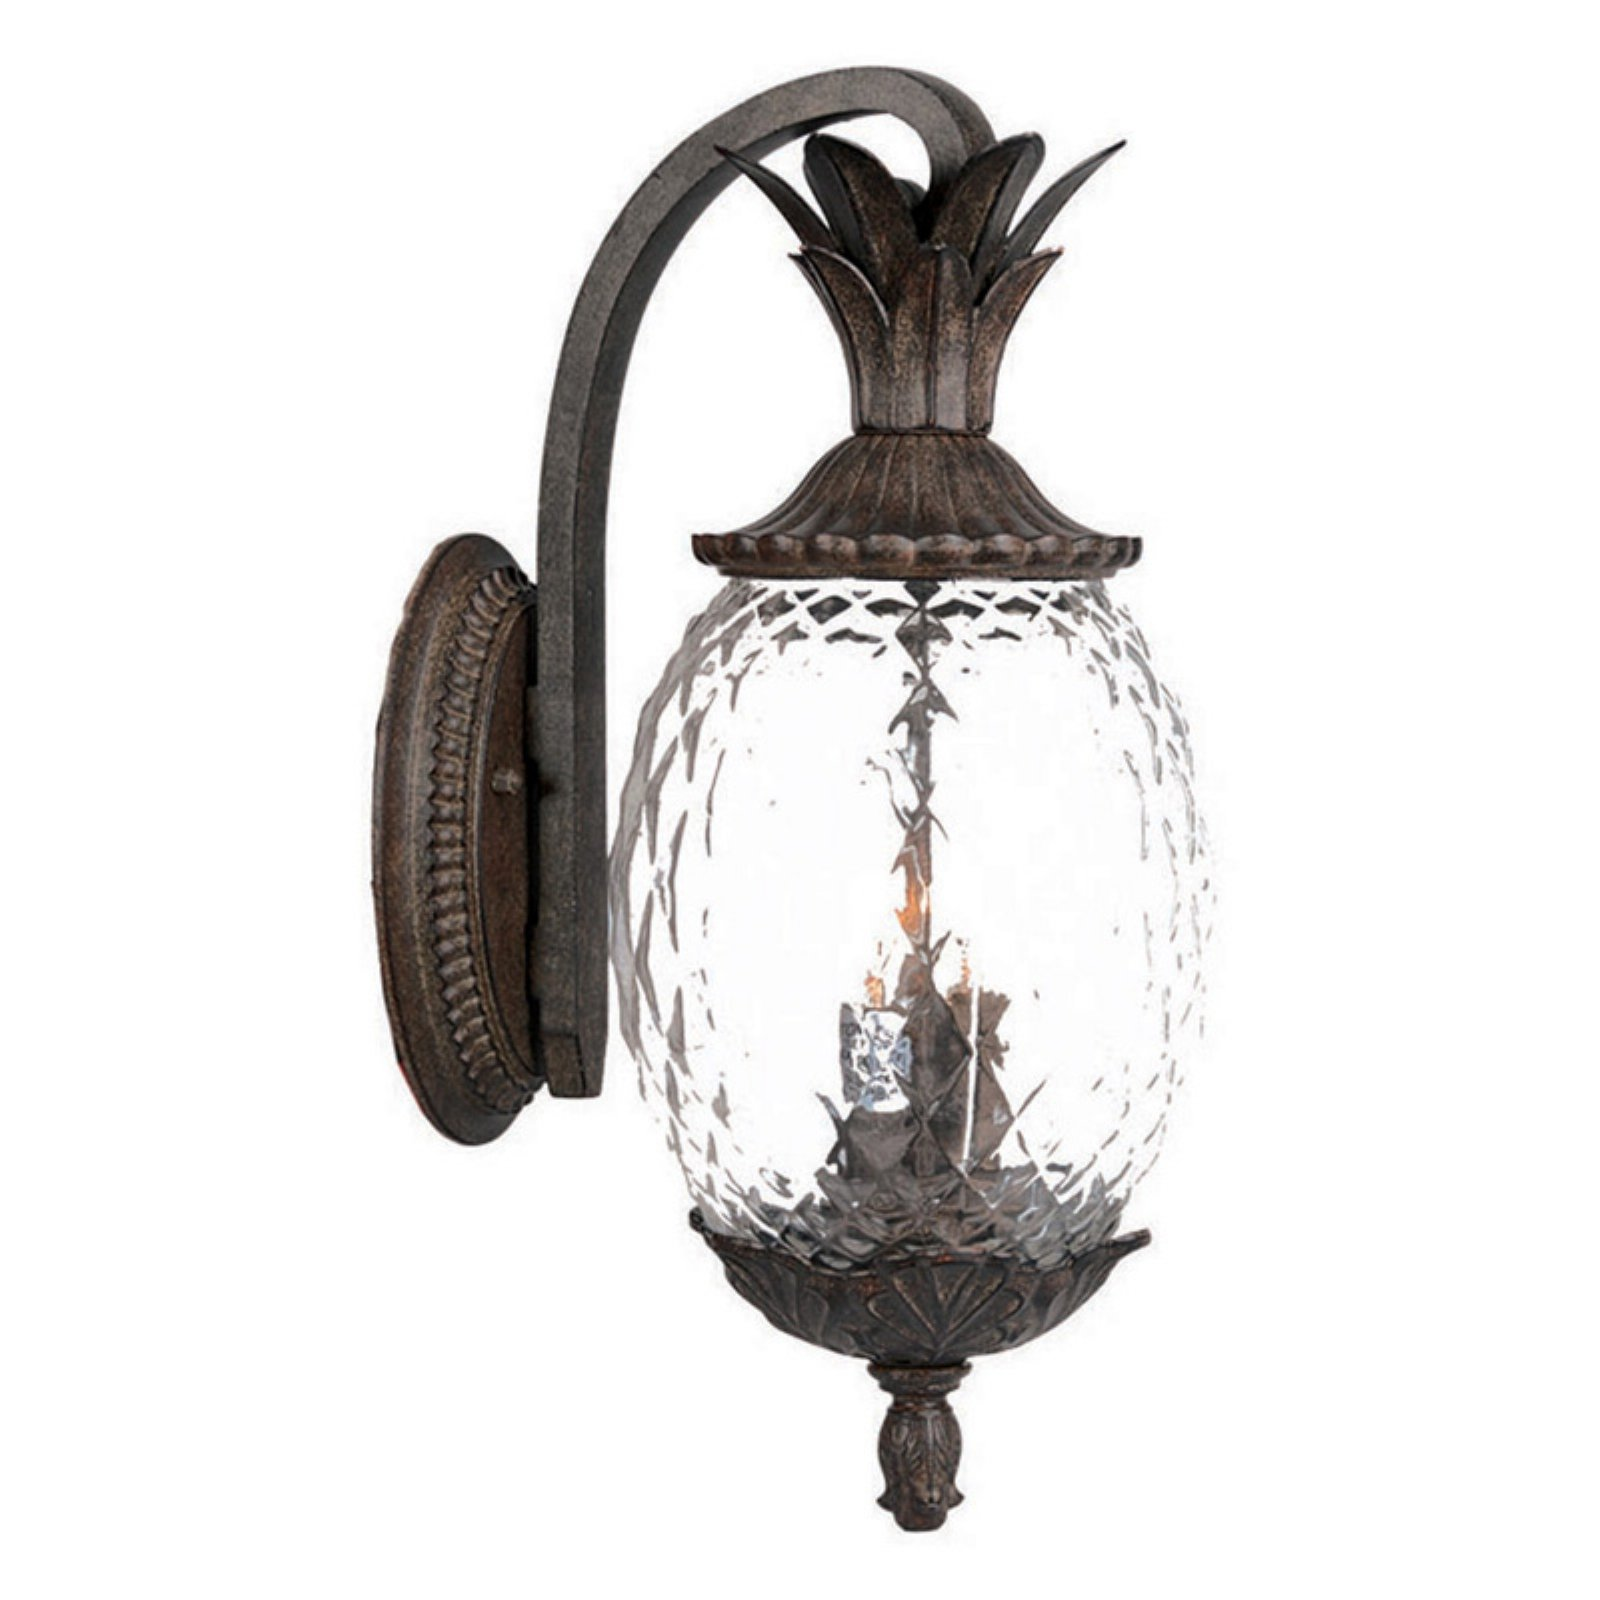 Acclaim Lighting Lanai 9.5 in. Outdoor Wall Mount Light Fixture